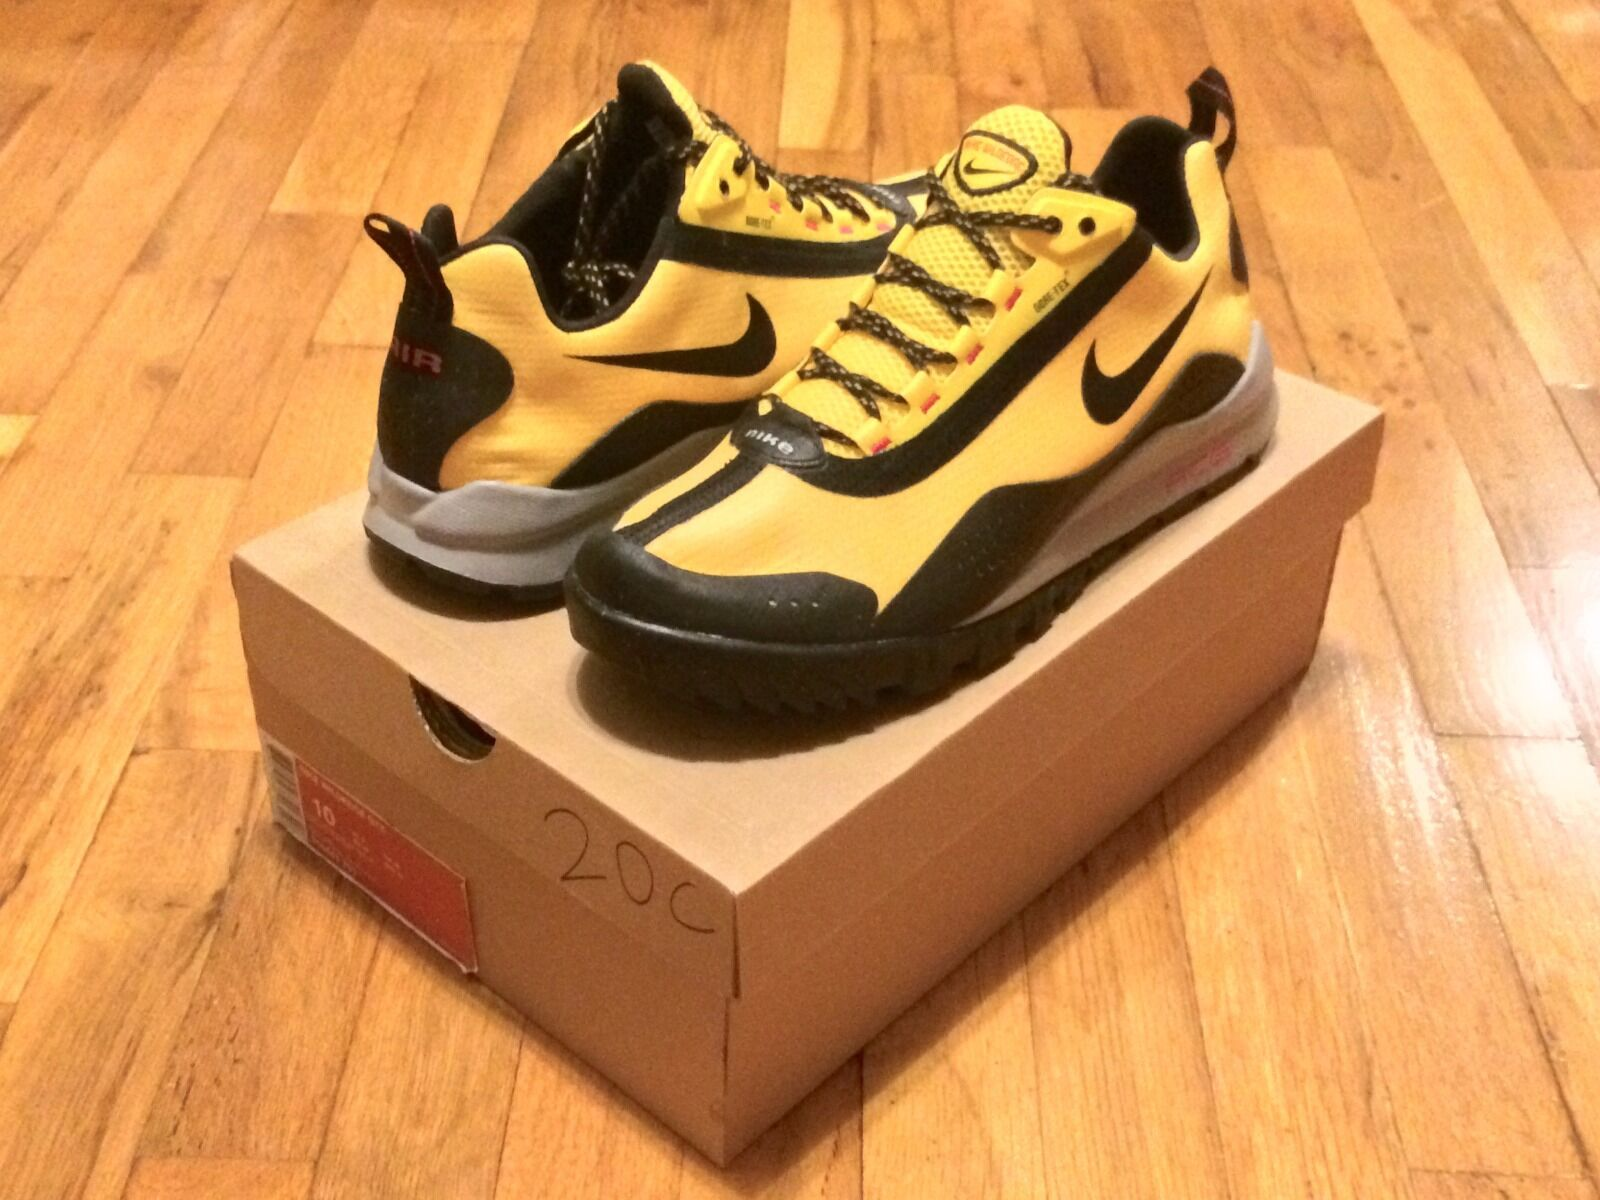 NIKE WILDEDGE GTX VARSITY MAIZE 316441 701 SIZE 10 DS RARE